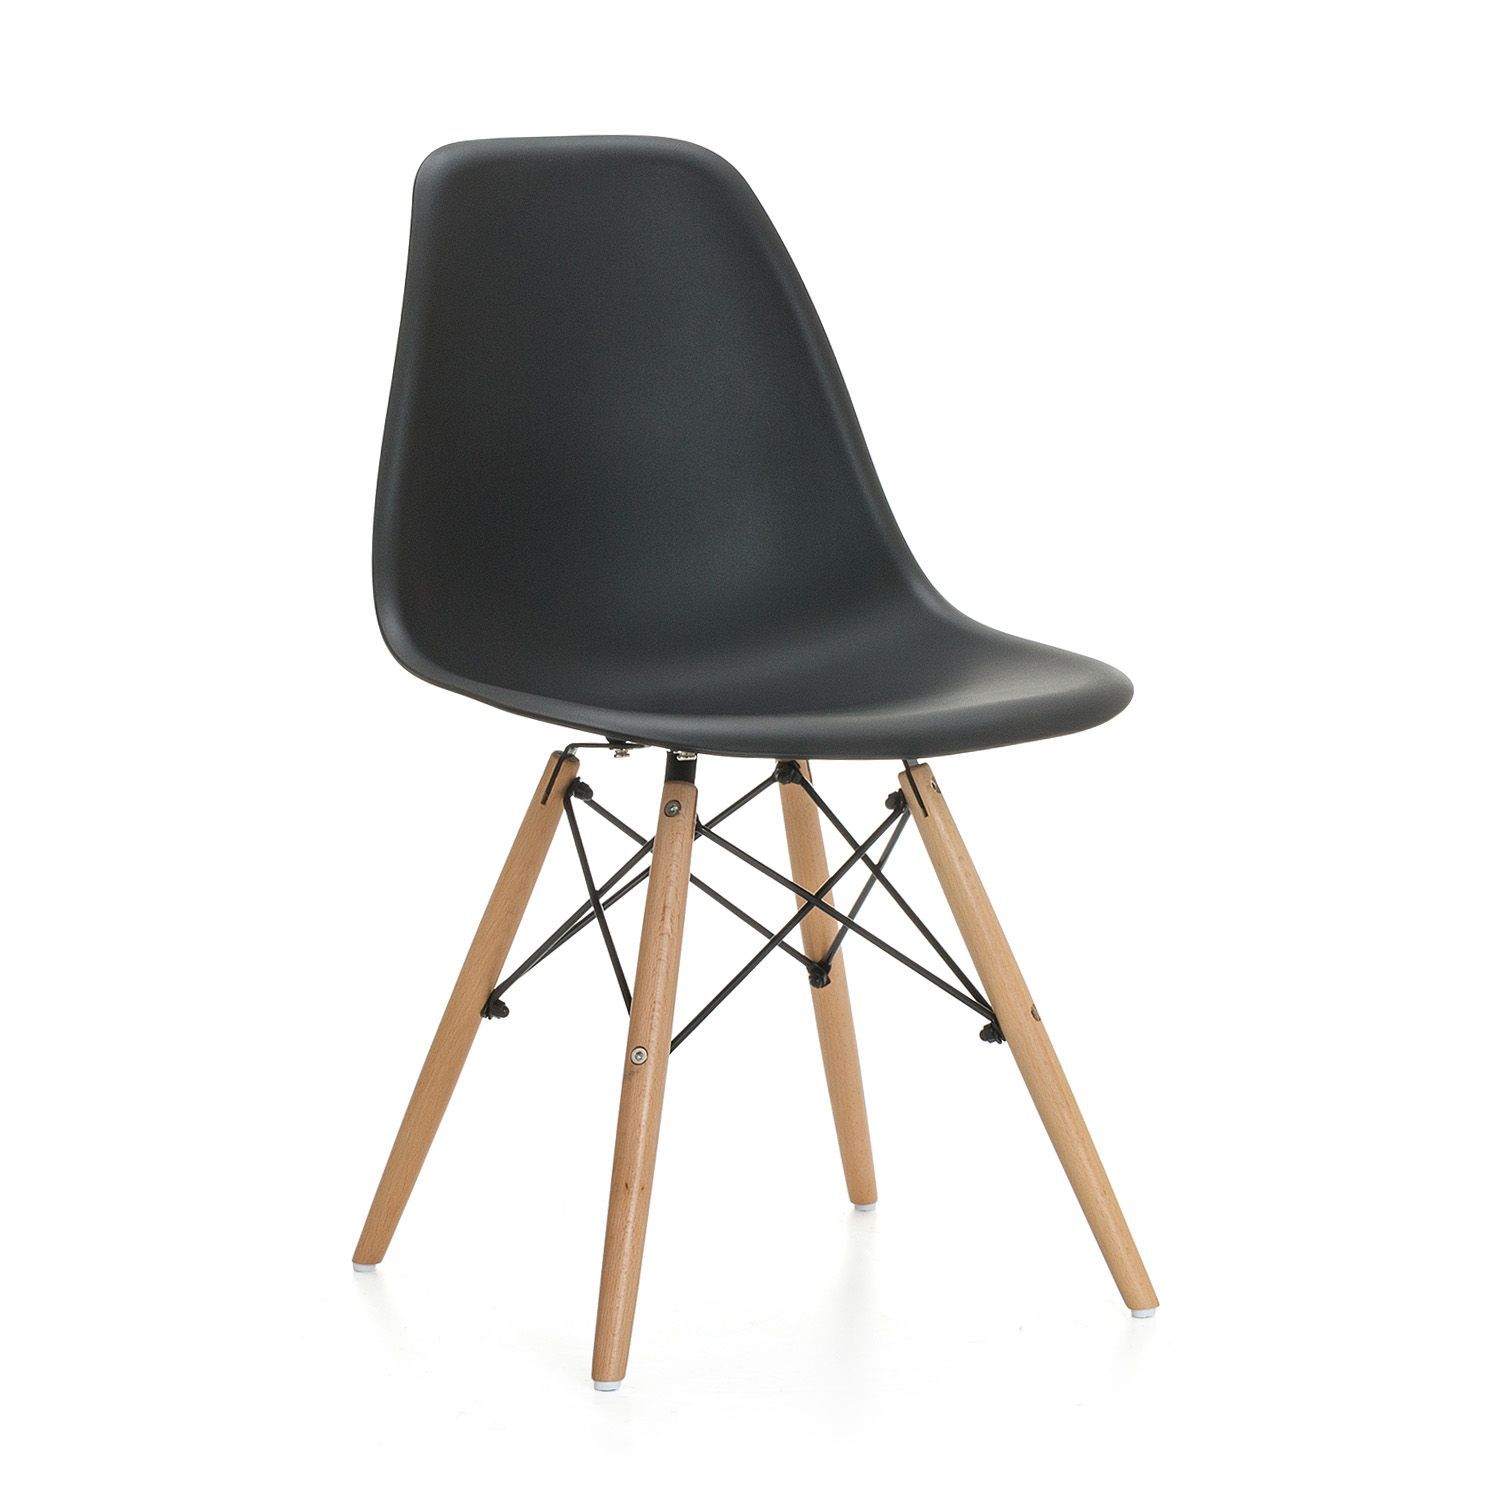 Chaise Wooden Polypropylene Inspiration Dsw De Charles Ray